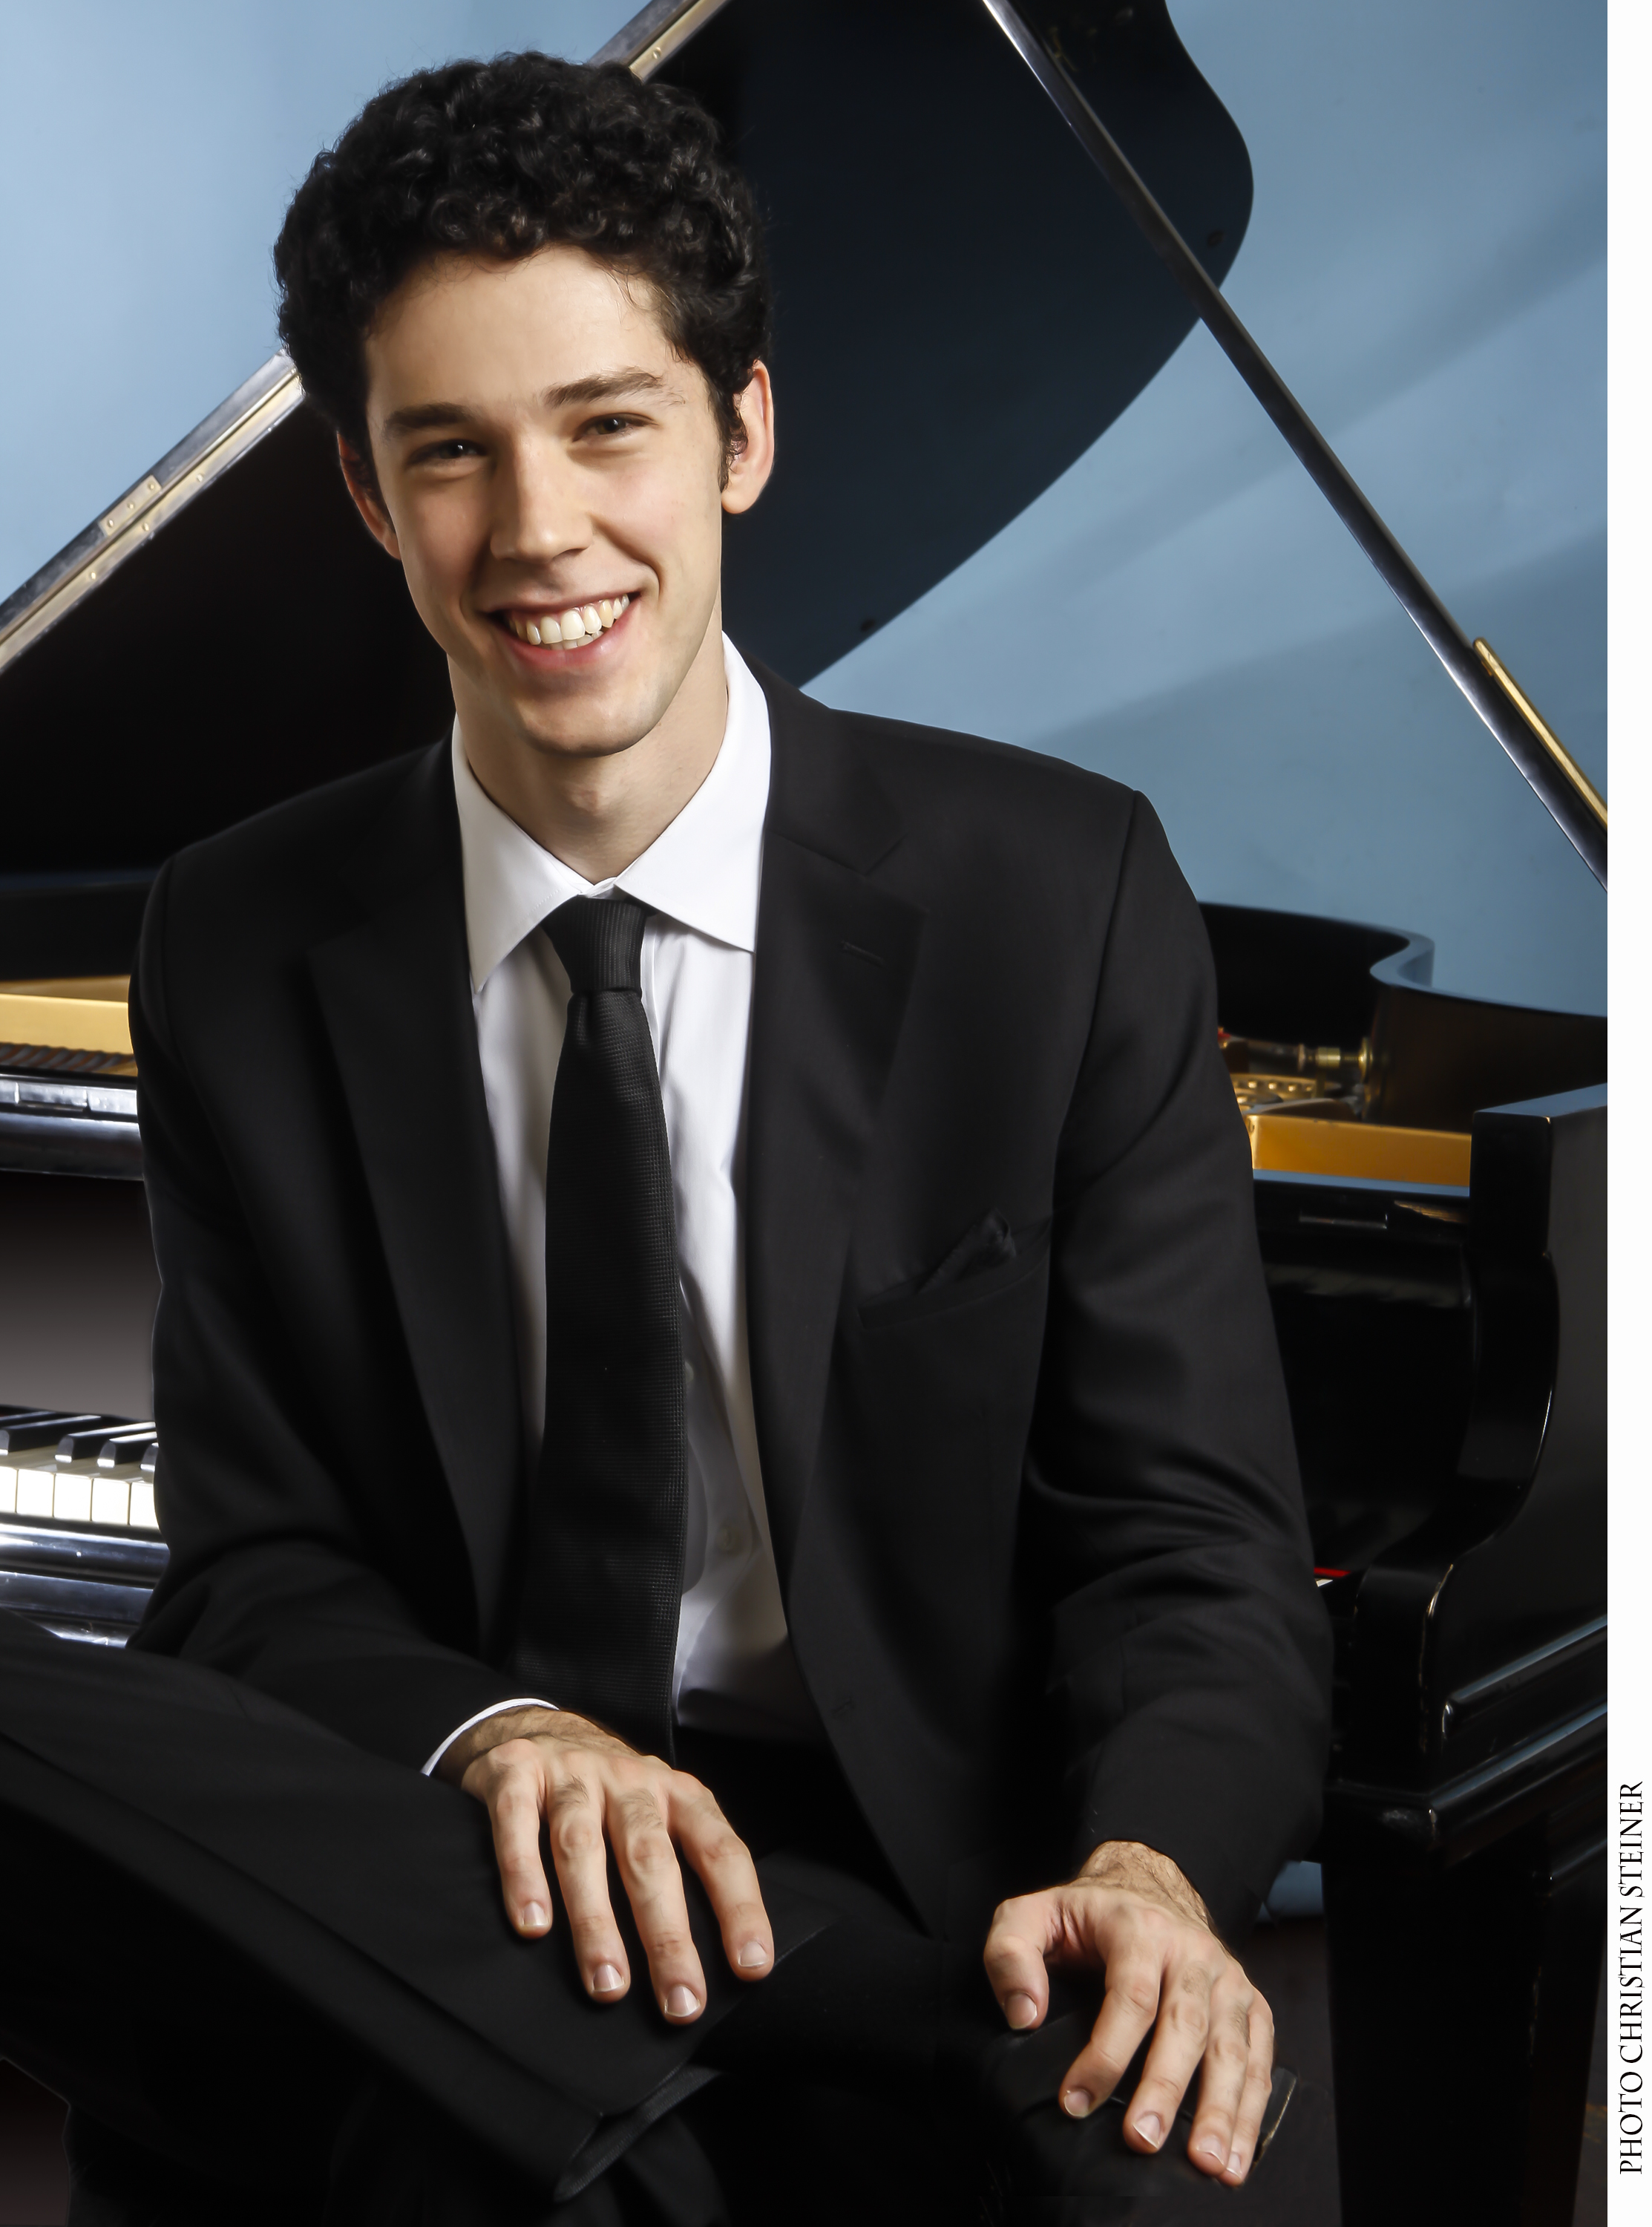 BEETHOVEN Andante Favori, WoO 57BRAHMS Sonata No. 3 in F Minor, Op. 5Tomer Gewirtzman, piano -